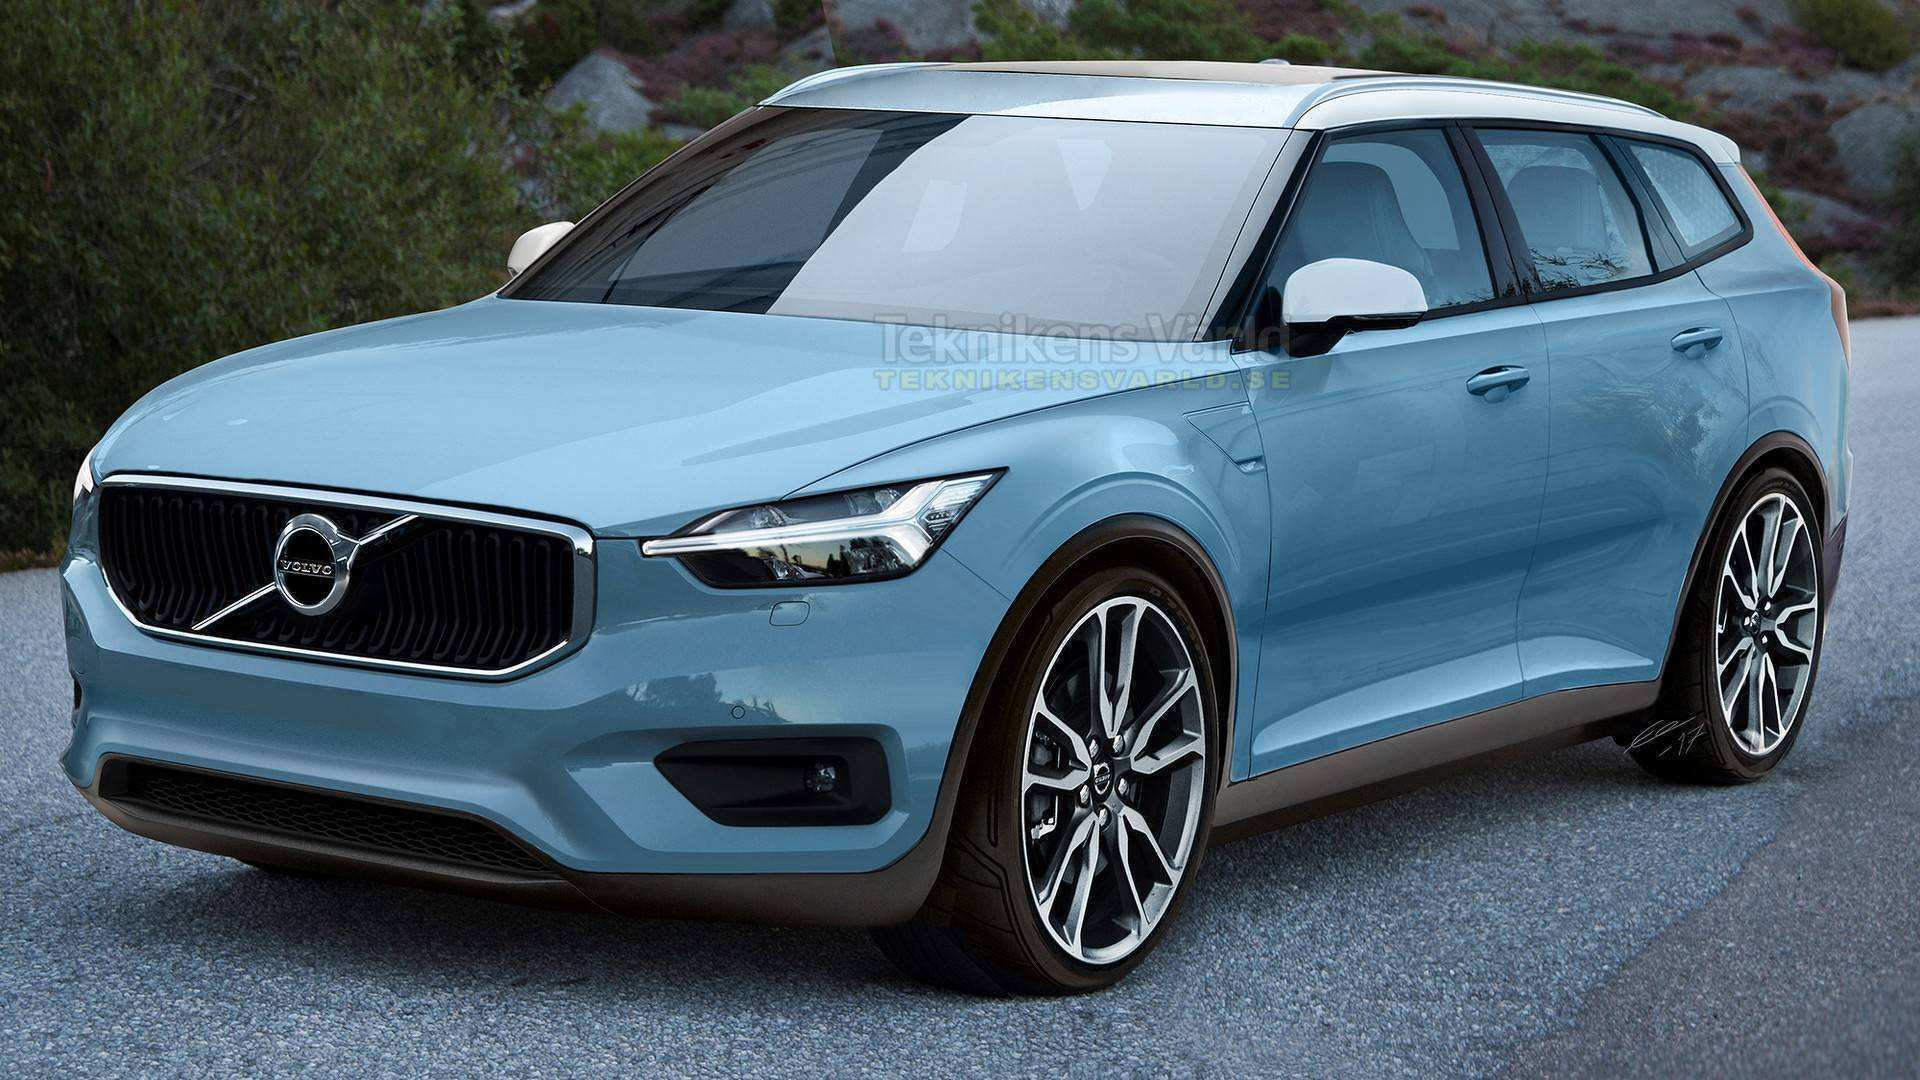 83 The 2020 Volvo S40 2018 Model for 2020 Volvo S40 2018